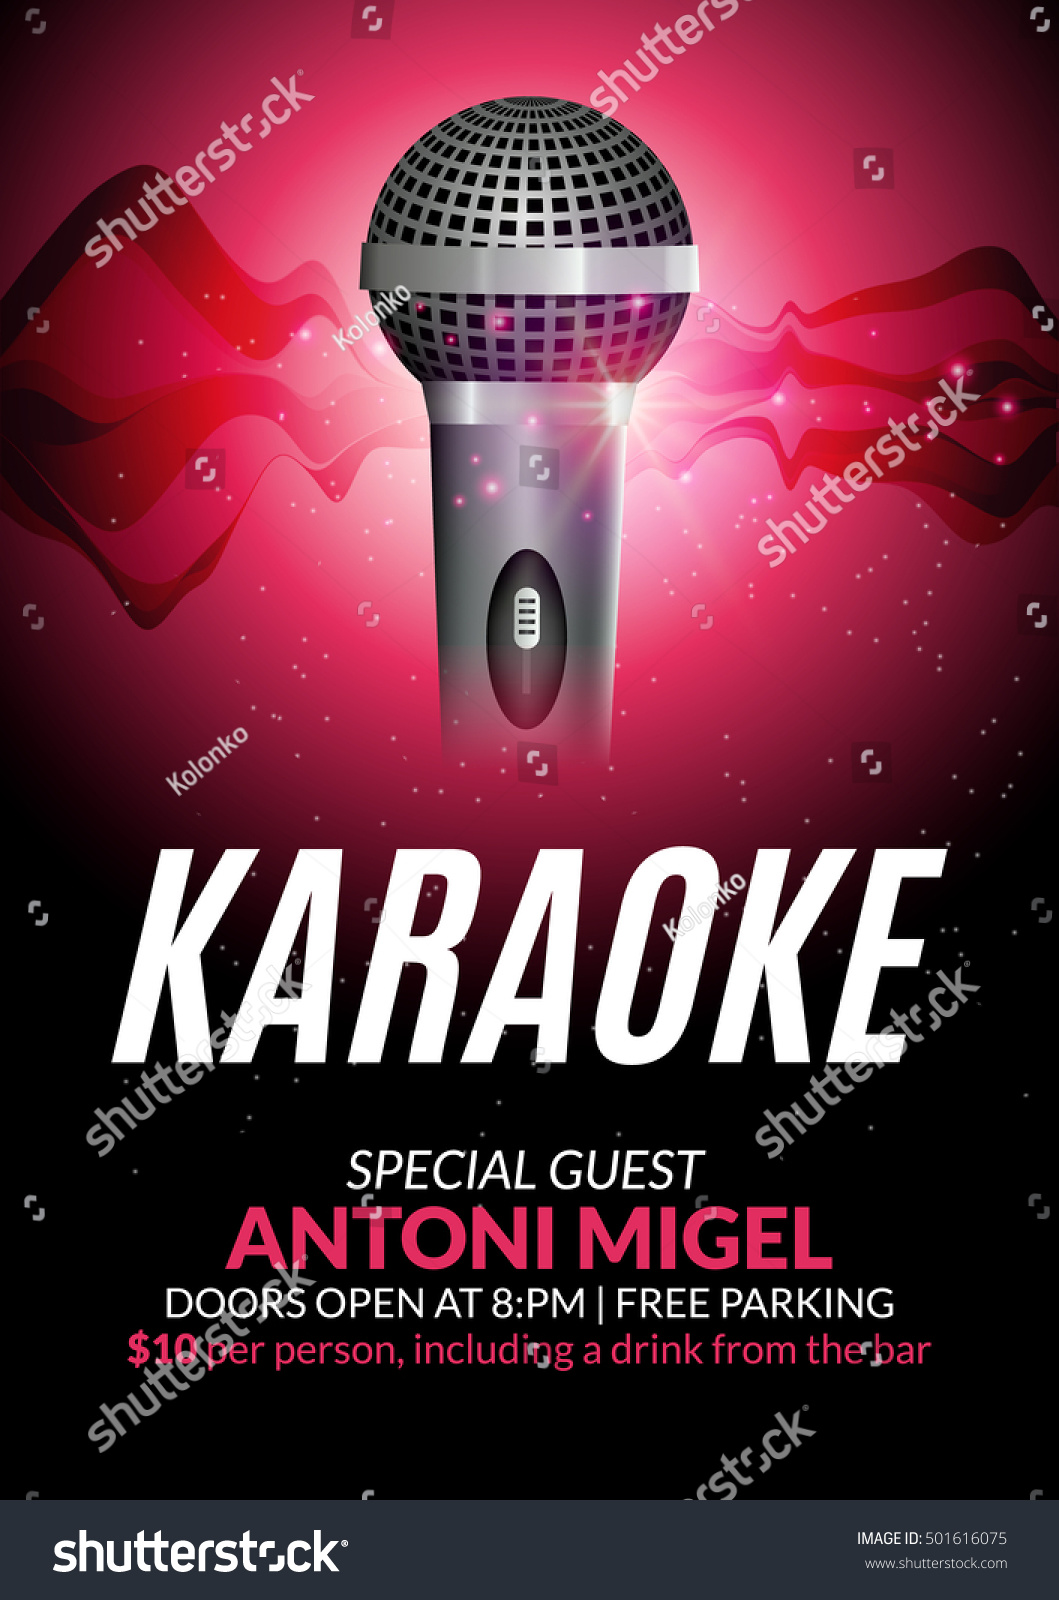 Karaoke Party Invitation Poster Design Template Stock